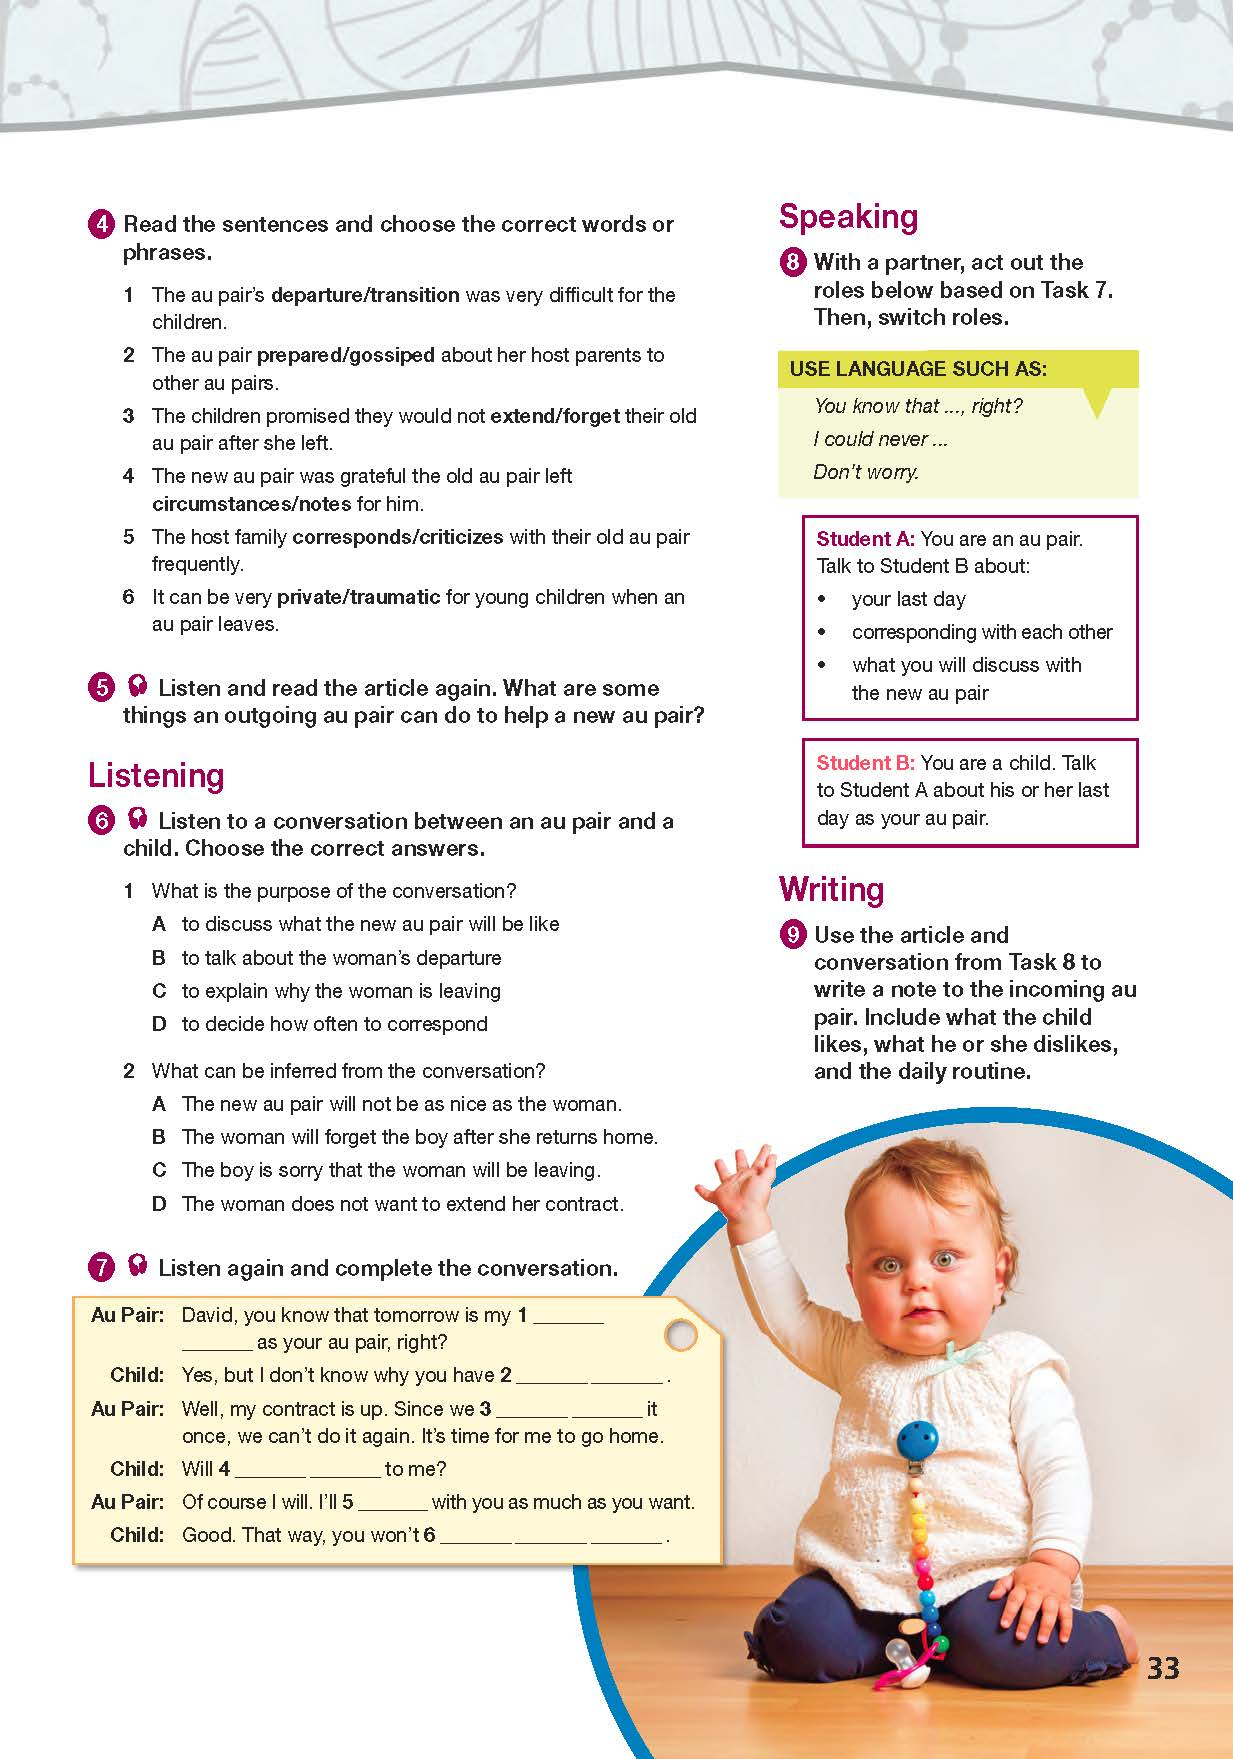 ESP English for Specific Purposes - Career Paths: Au Pair - Sample Page 4